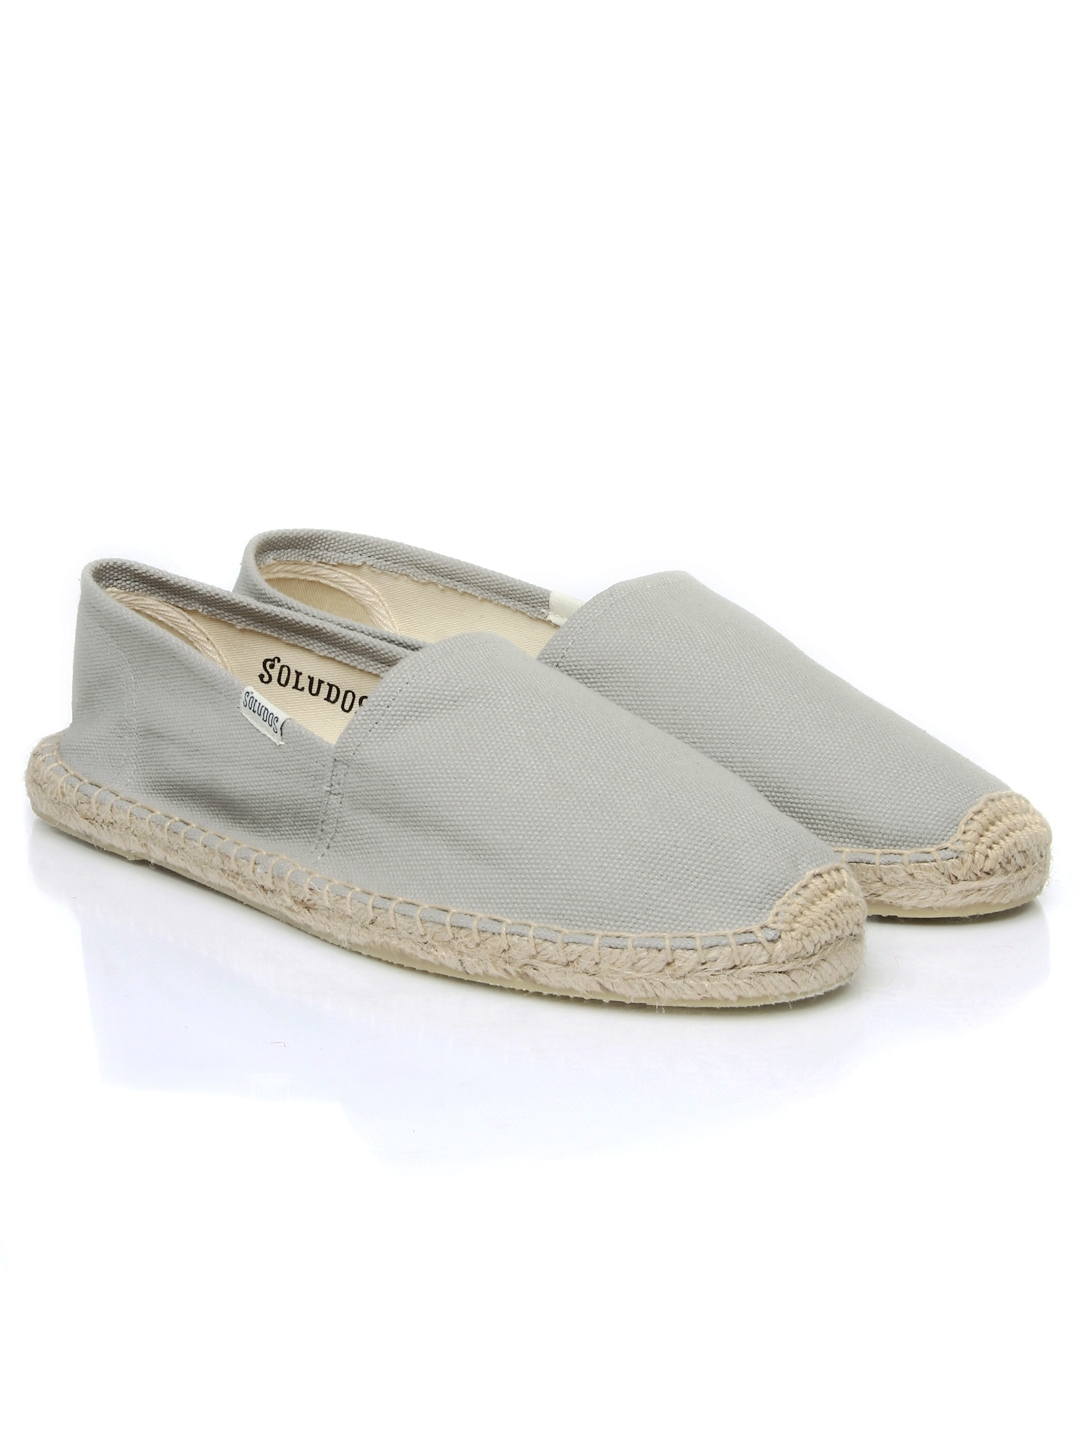 Find grey from the Womens department at Debenhams. Shop a wide range of Shoes products and more at our online shop today.